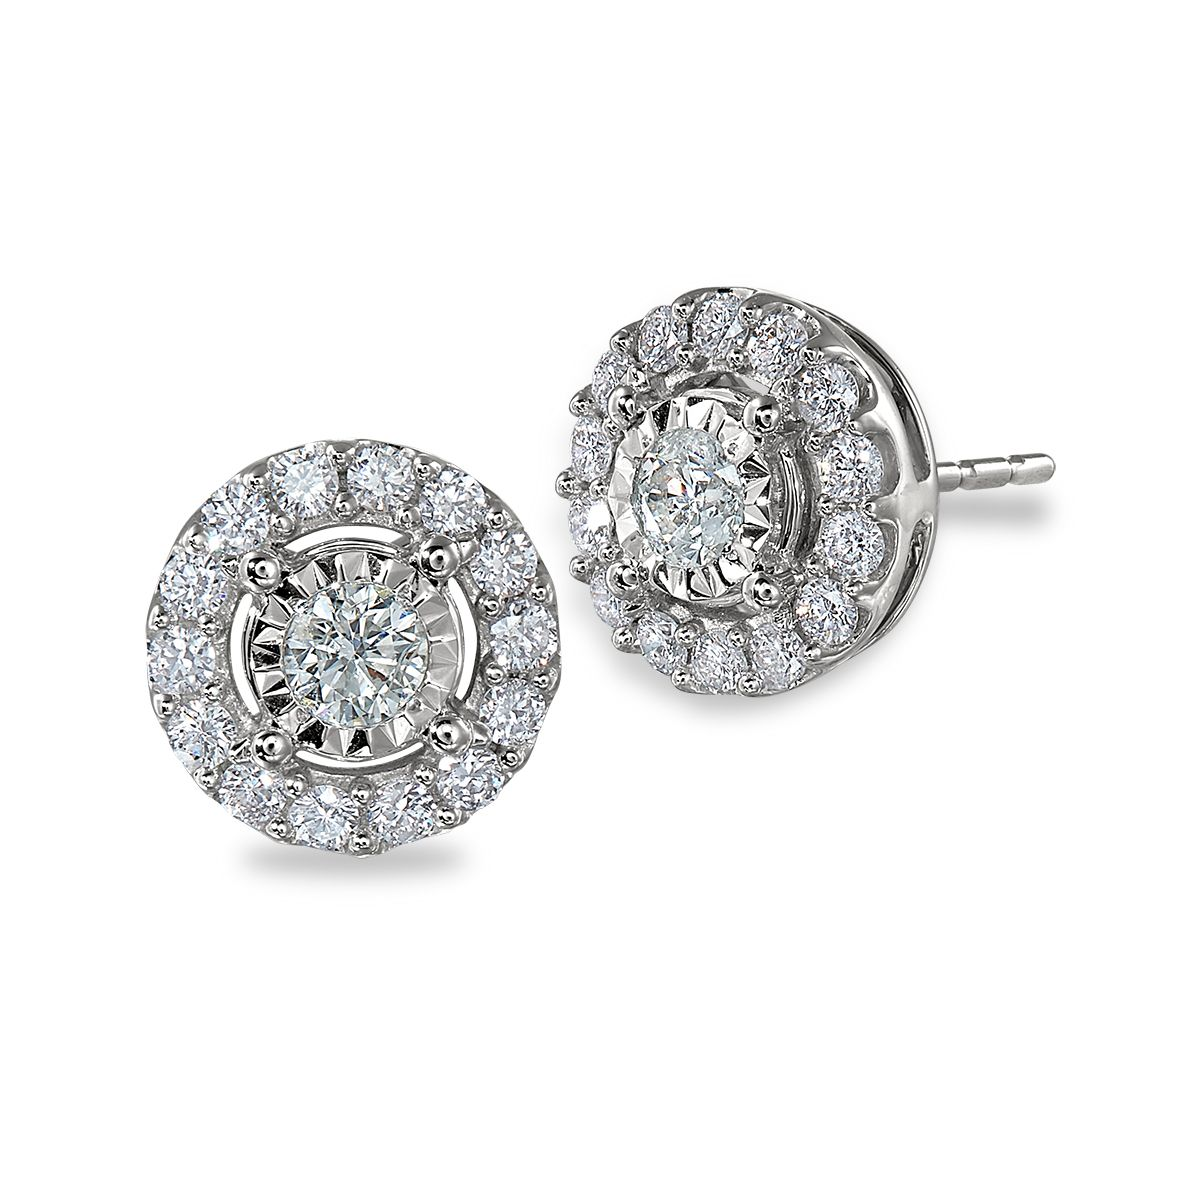 14K White Gold and Diamond Studs